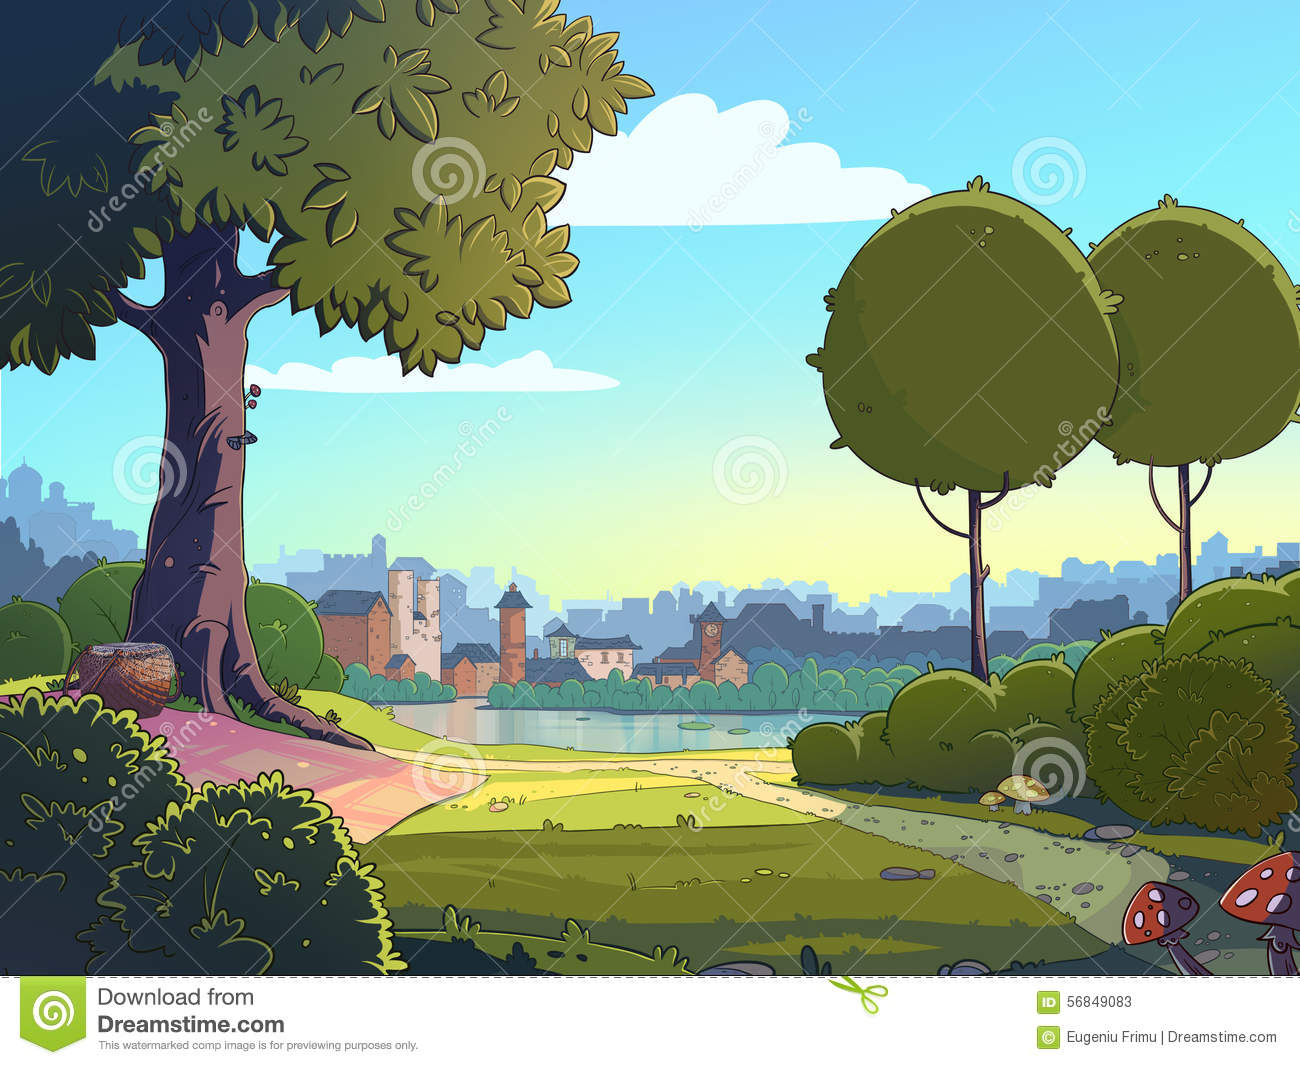 outdoors city park view green glade cartoon landscape background raster colorful illustration near town 56849083